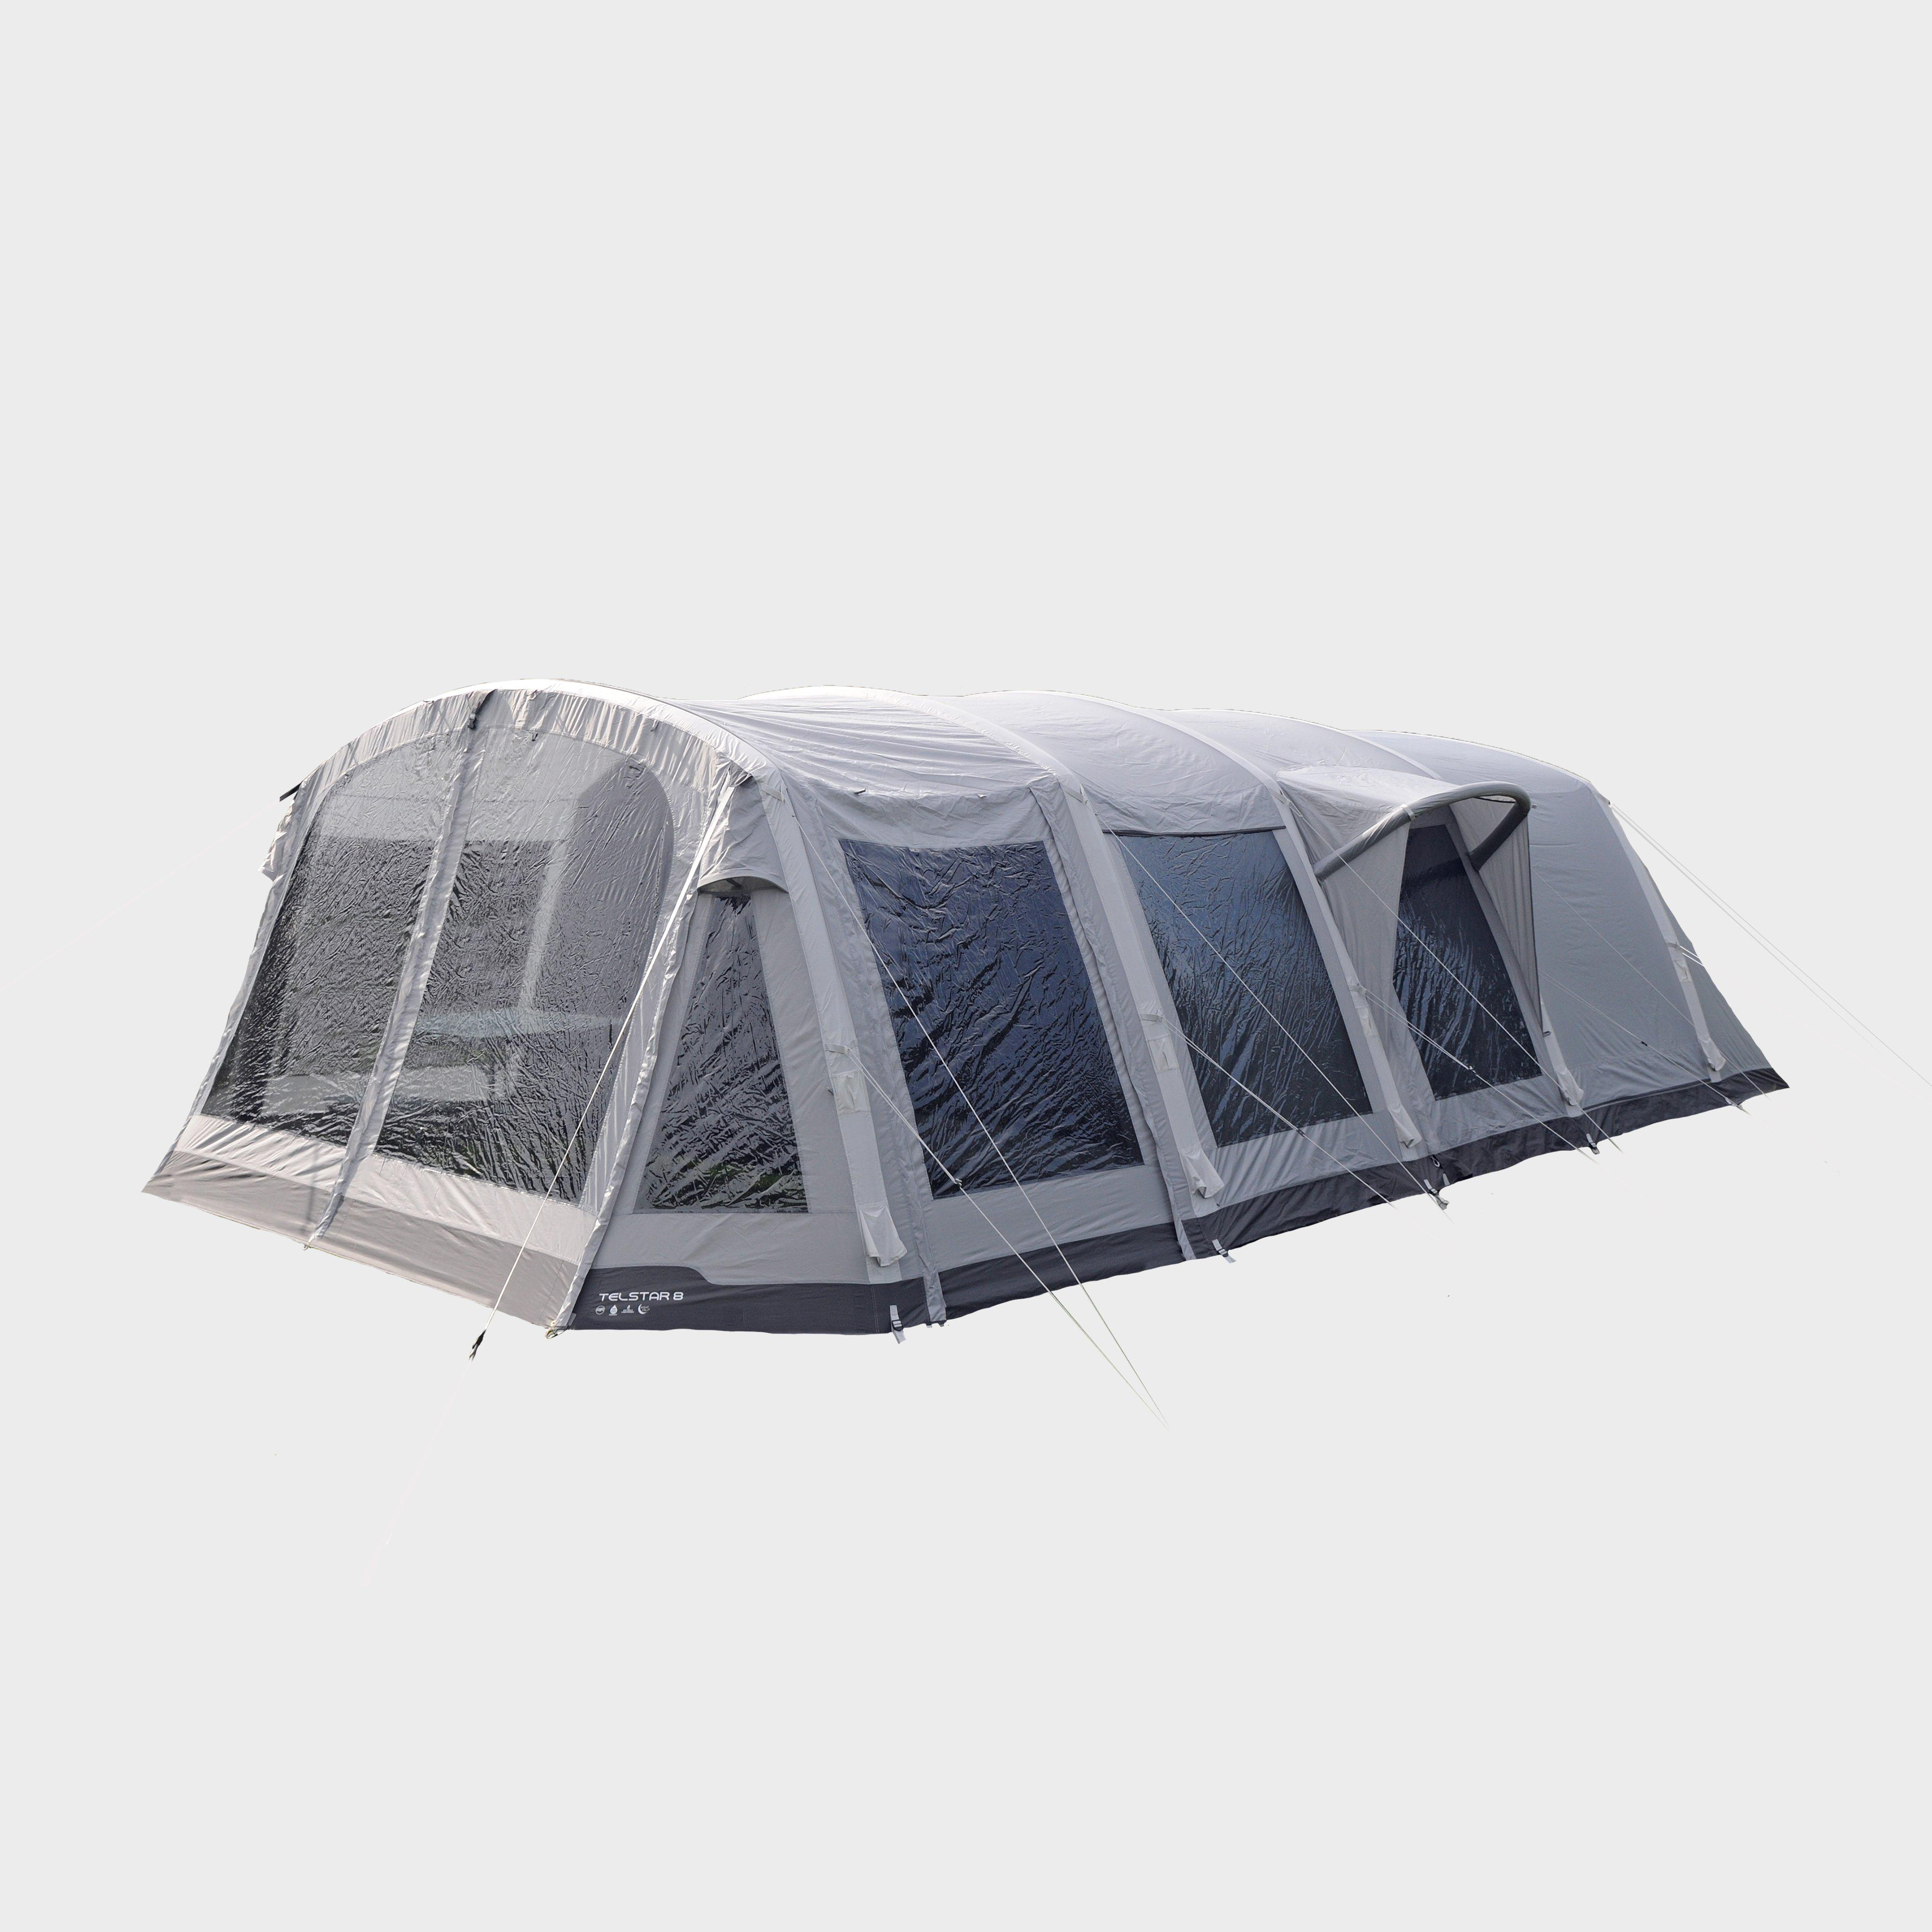 Berghaus Berghaus Telstar 8 Nightfall Air Tent, Grey